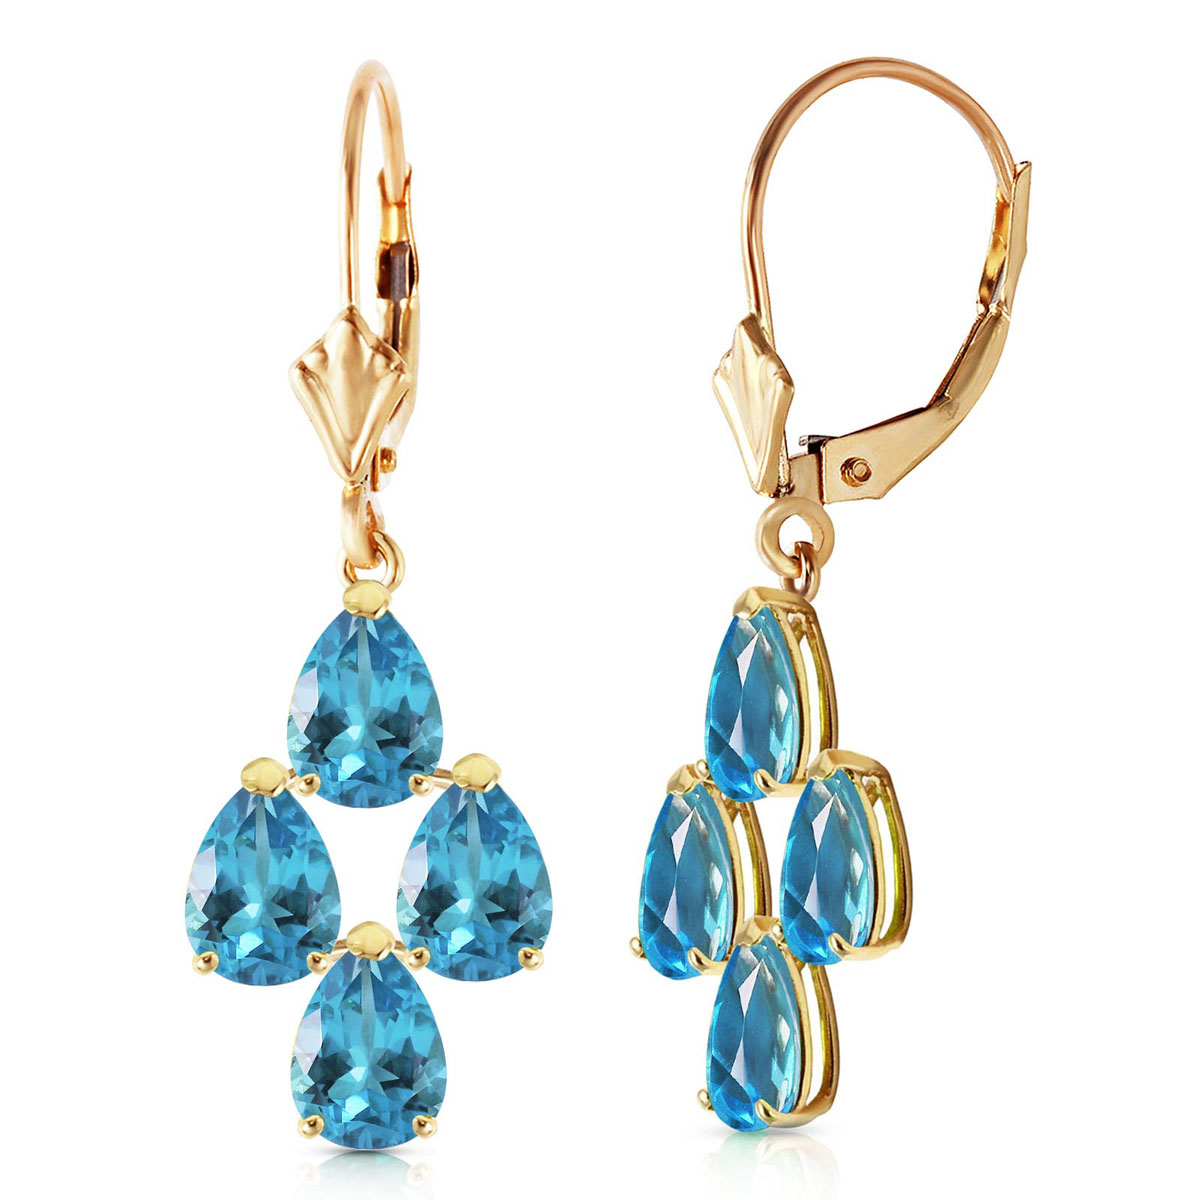 Blue Topaz Drop Earrings 4.5 ctw in 9ct Gold